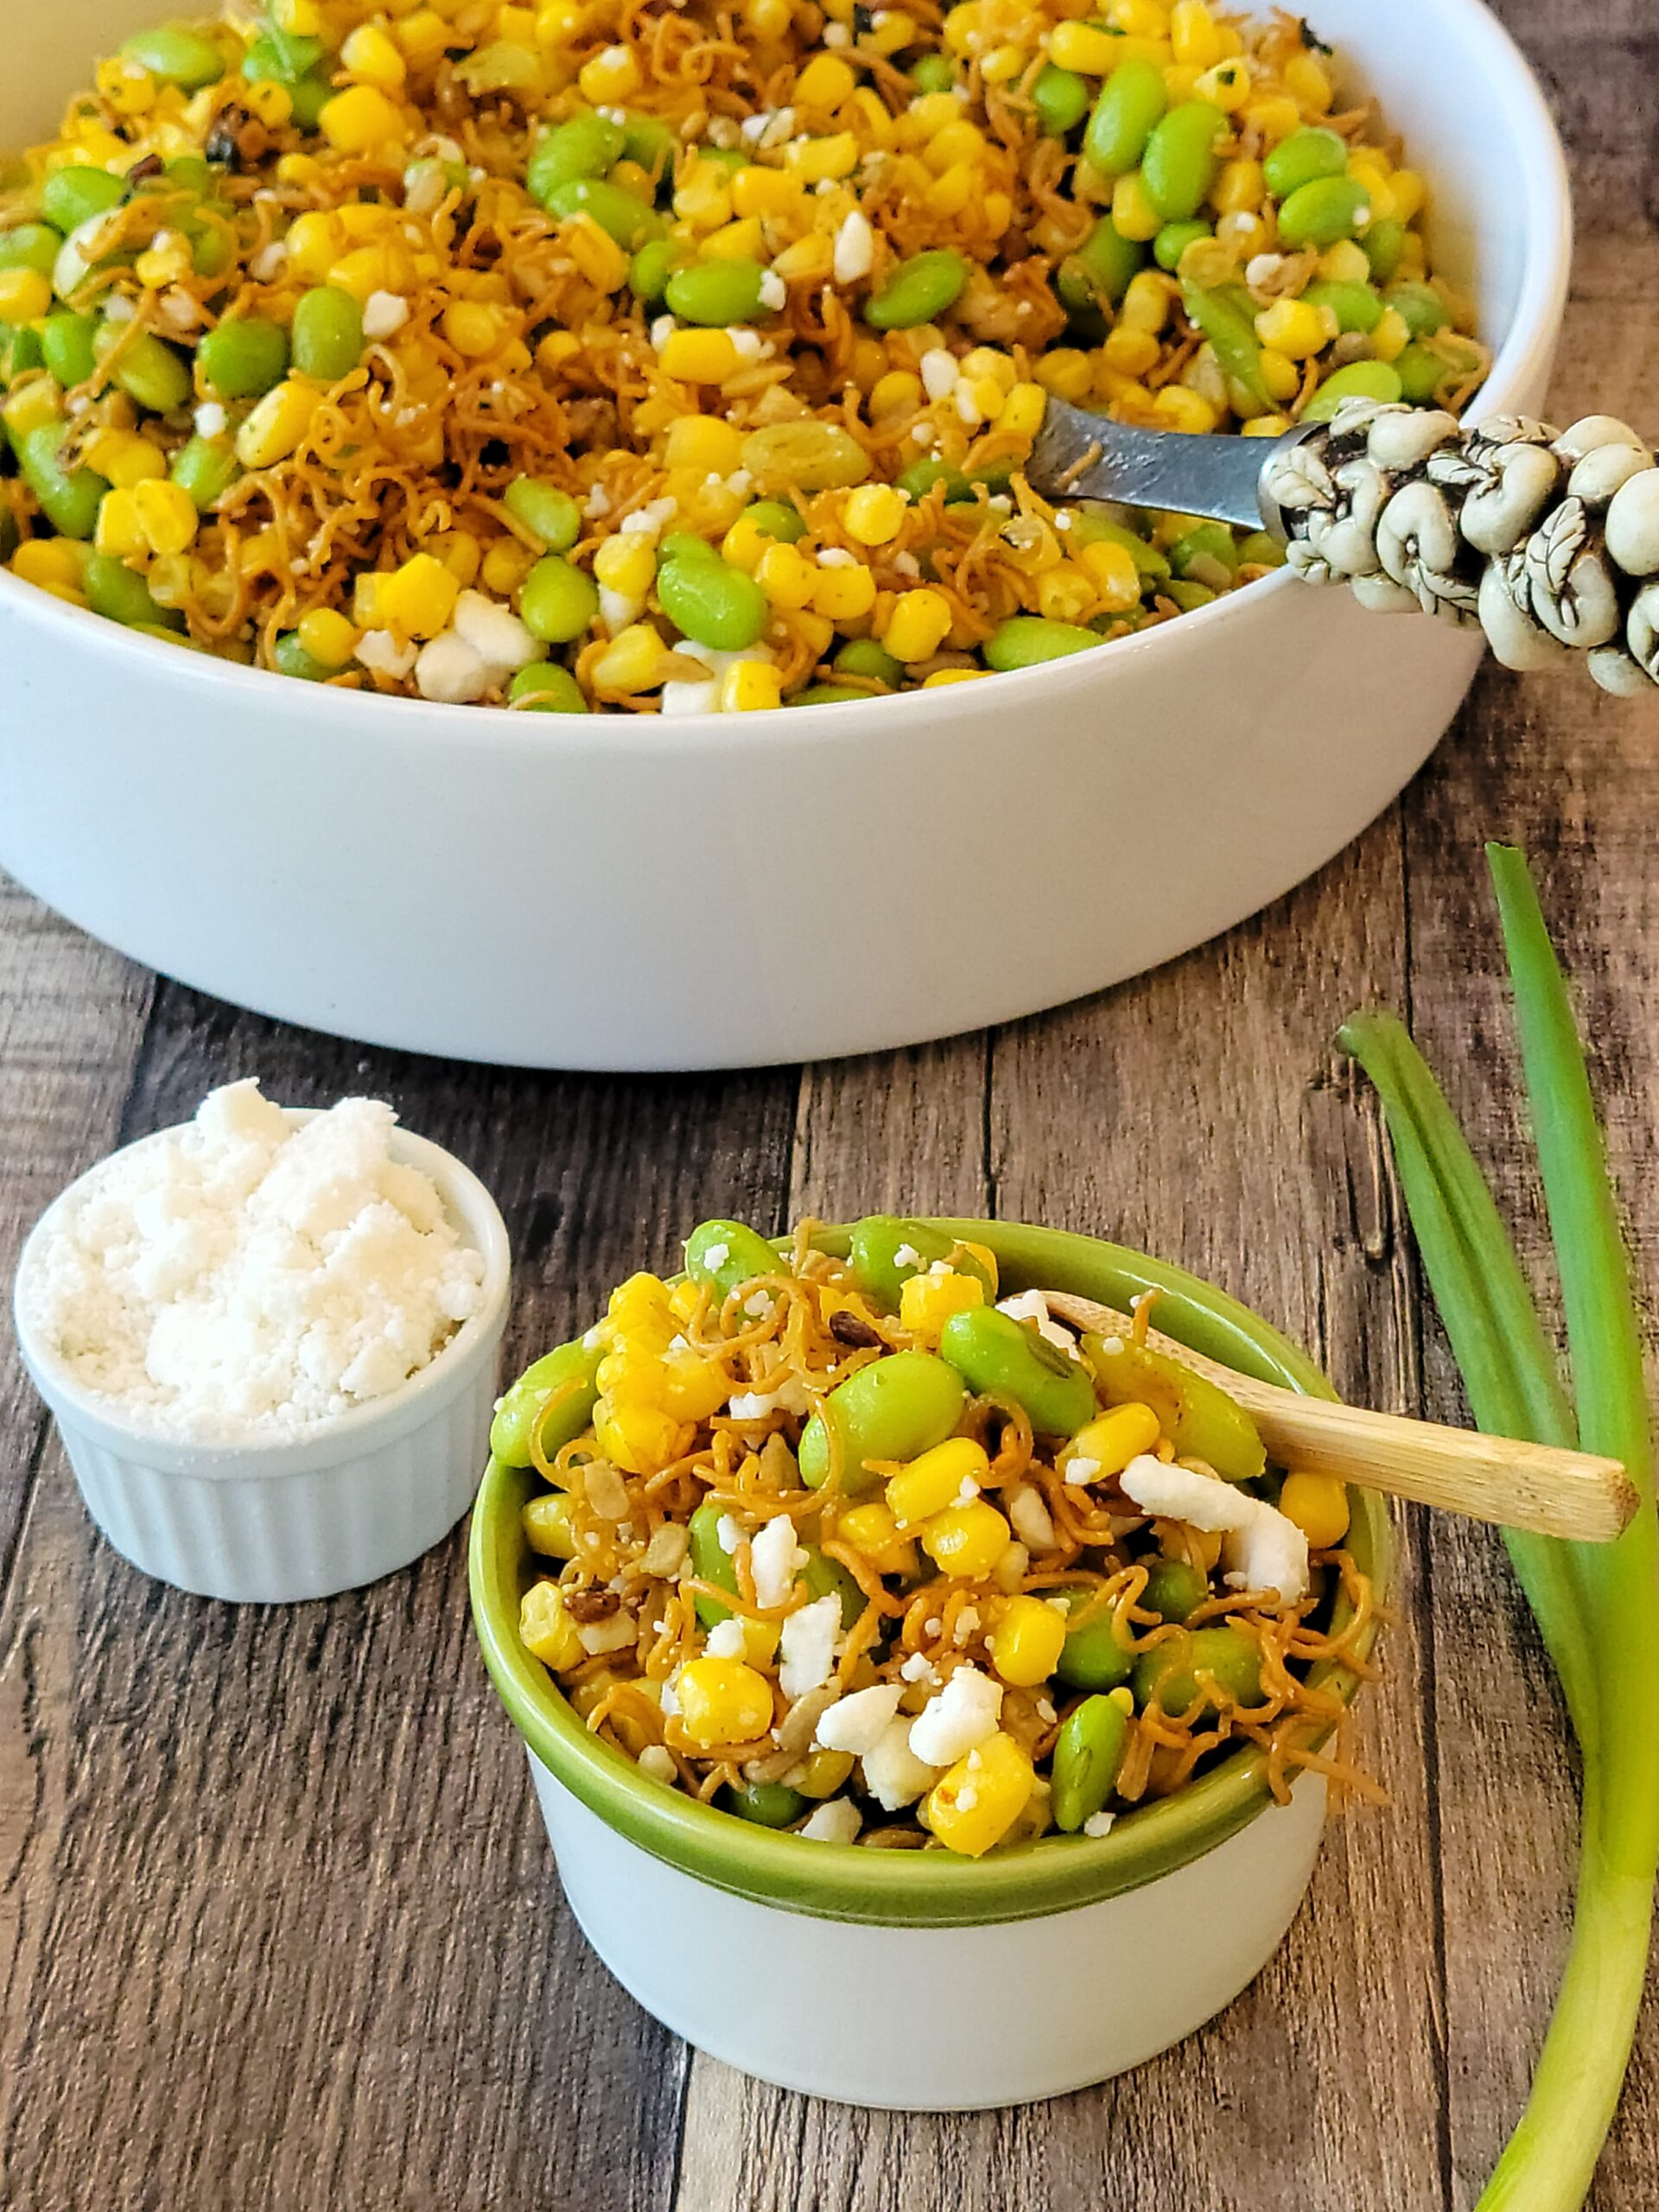 This is a picture of the updated version of the Crunchy Heartland Salad with plant based and gluten free ingredients.